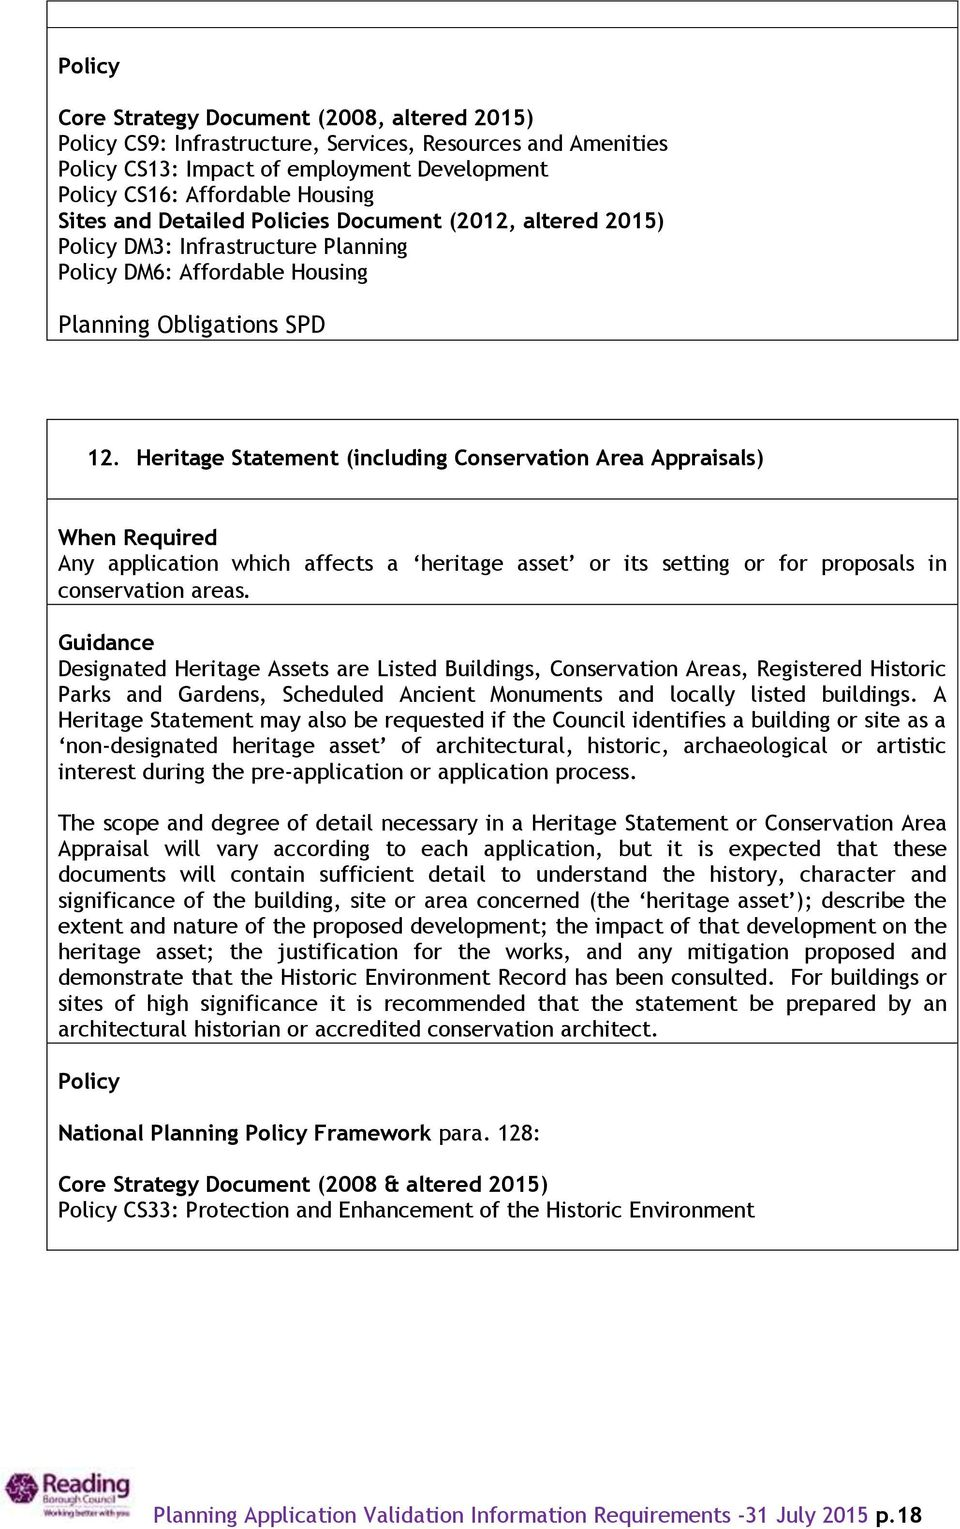 Heritage Statement (including Conservation Area Appraisals) When Required Any application which affects a heritage asset or its setting or for proposals in conservation areas.